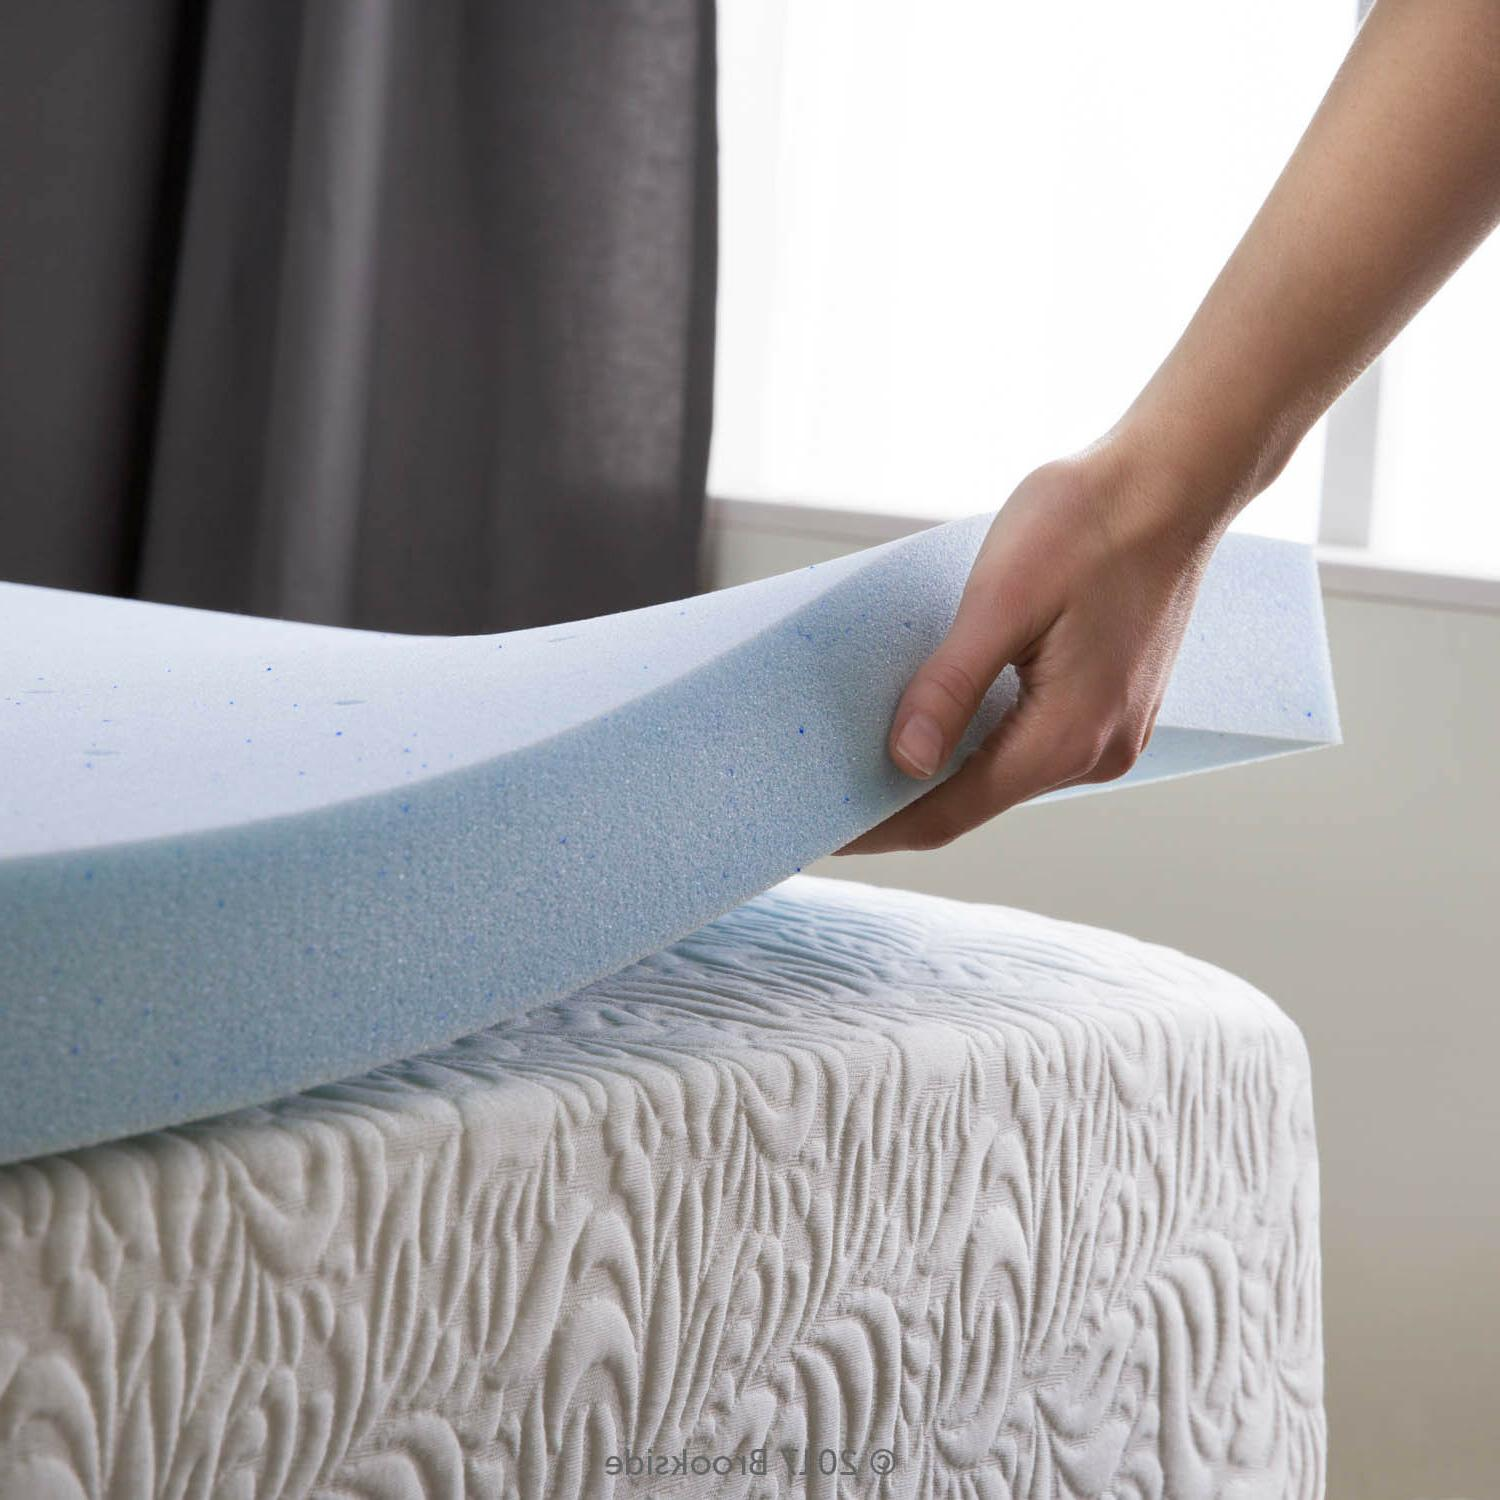 2.5 Inch Cooling Gel Memory Foam Mattress Topper - Twin Full